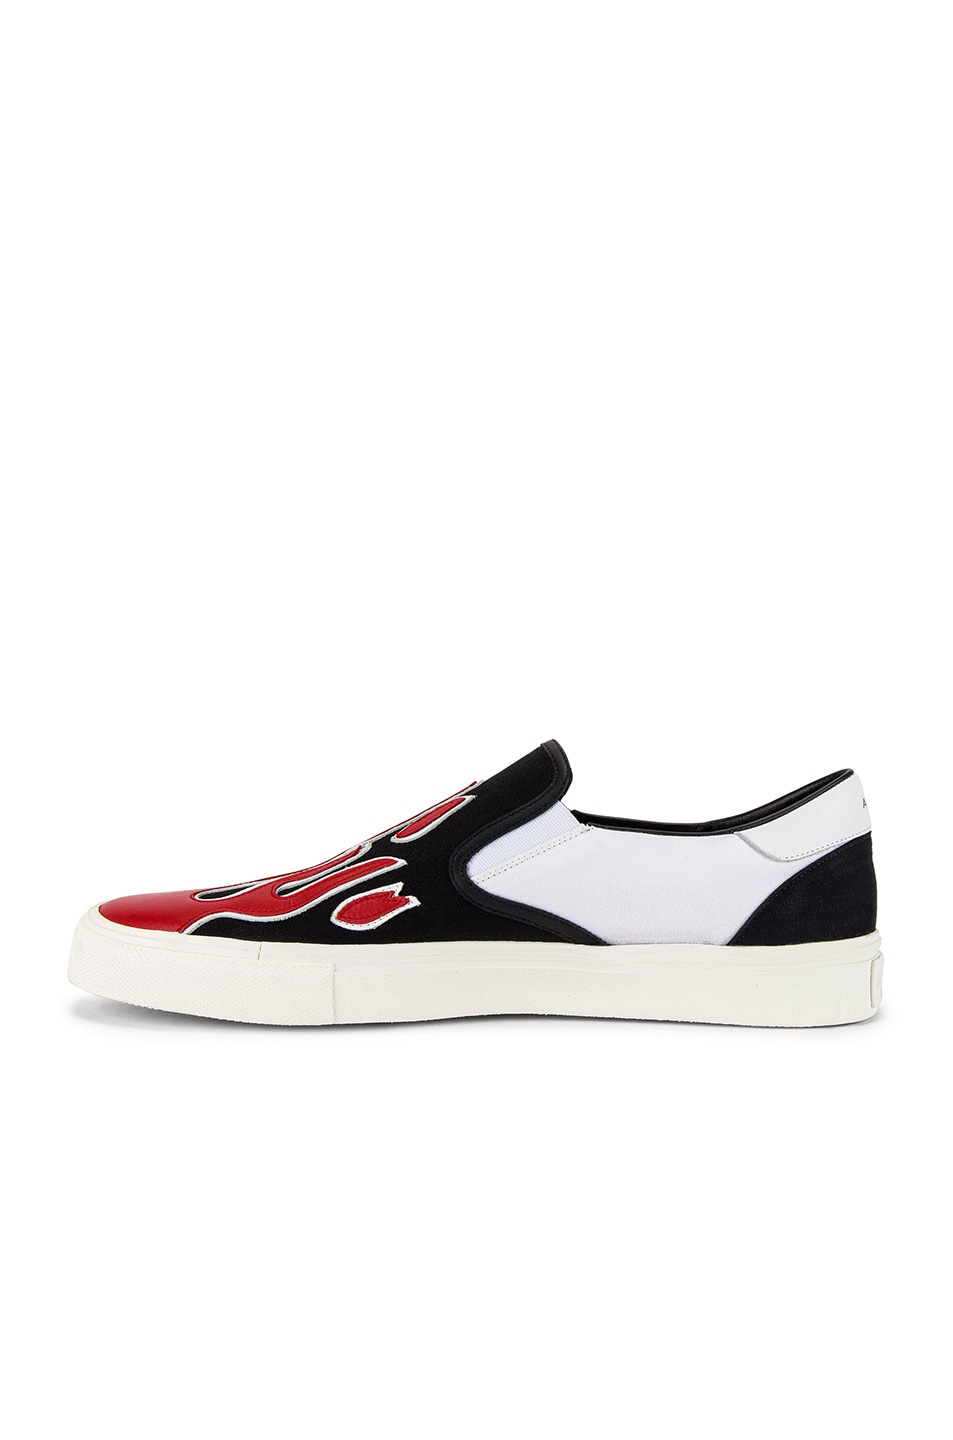 Image 5 of Amiri Flame Slip On in Black & White & Red